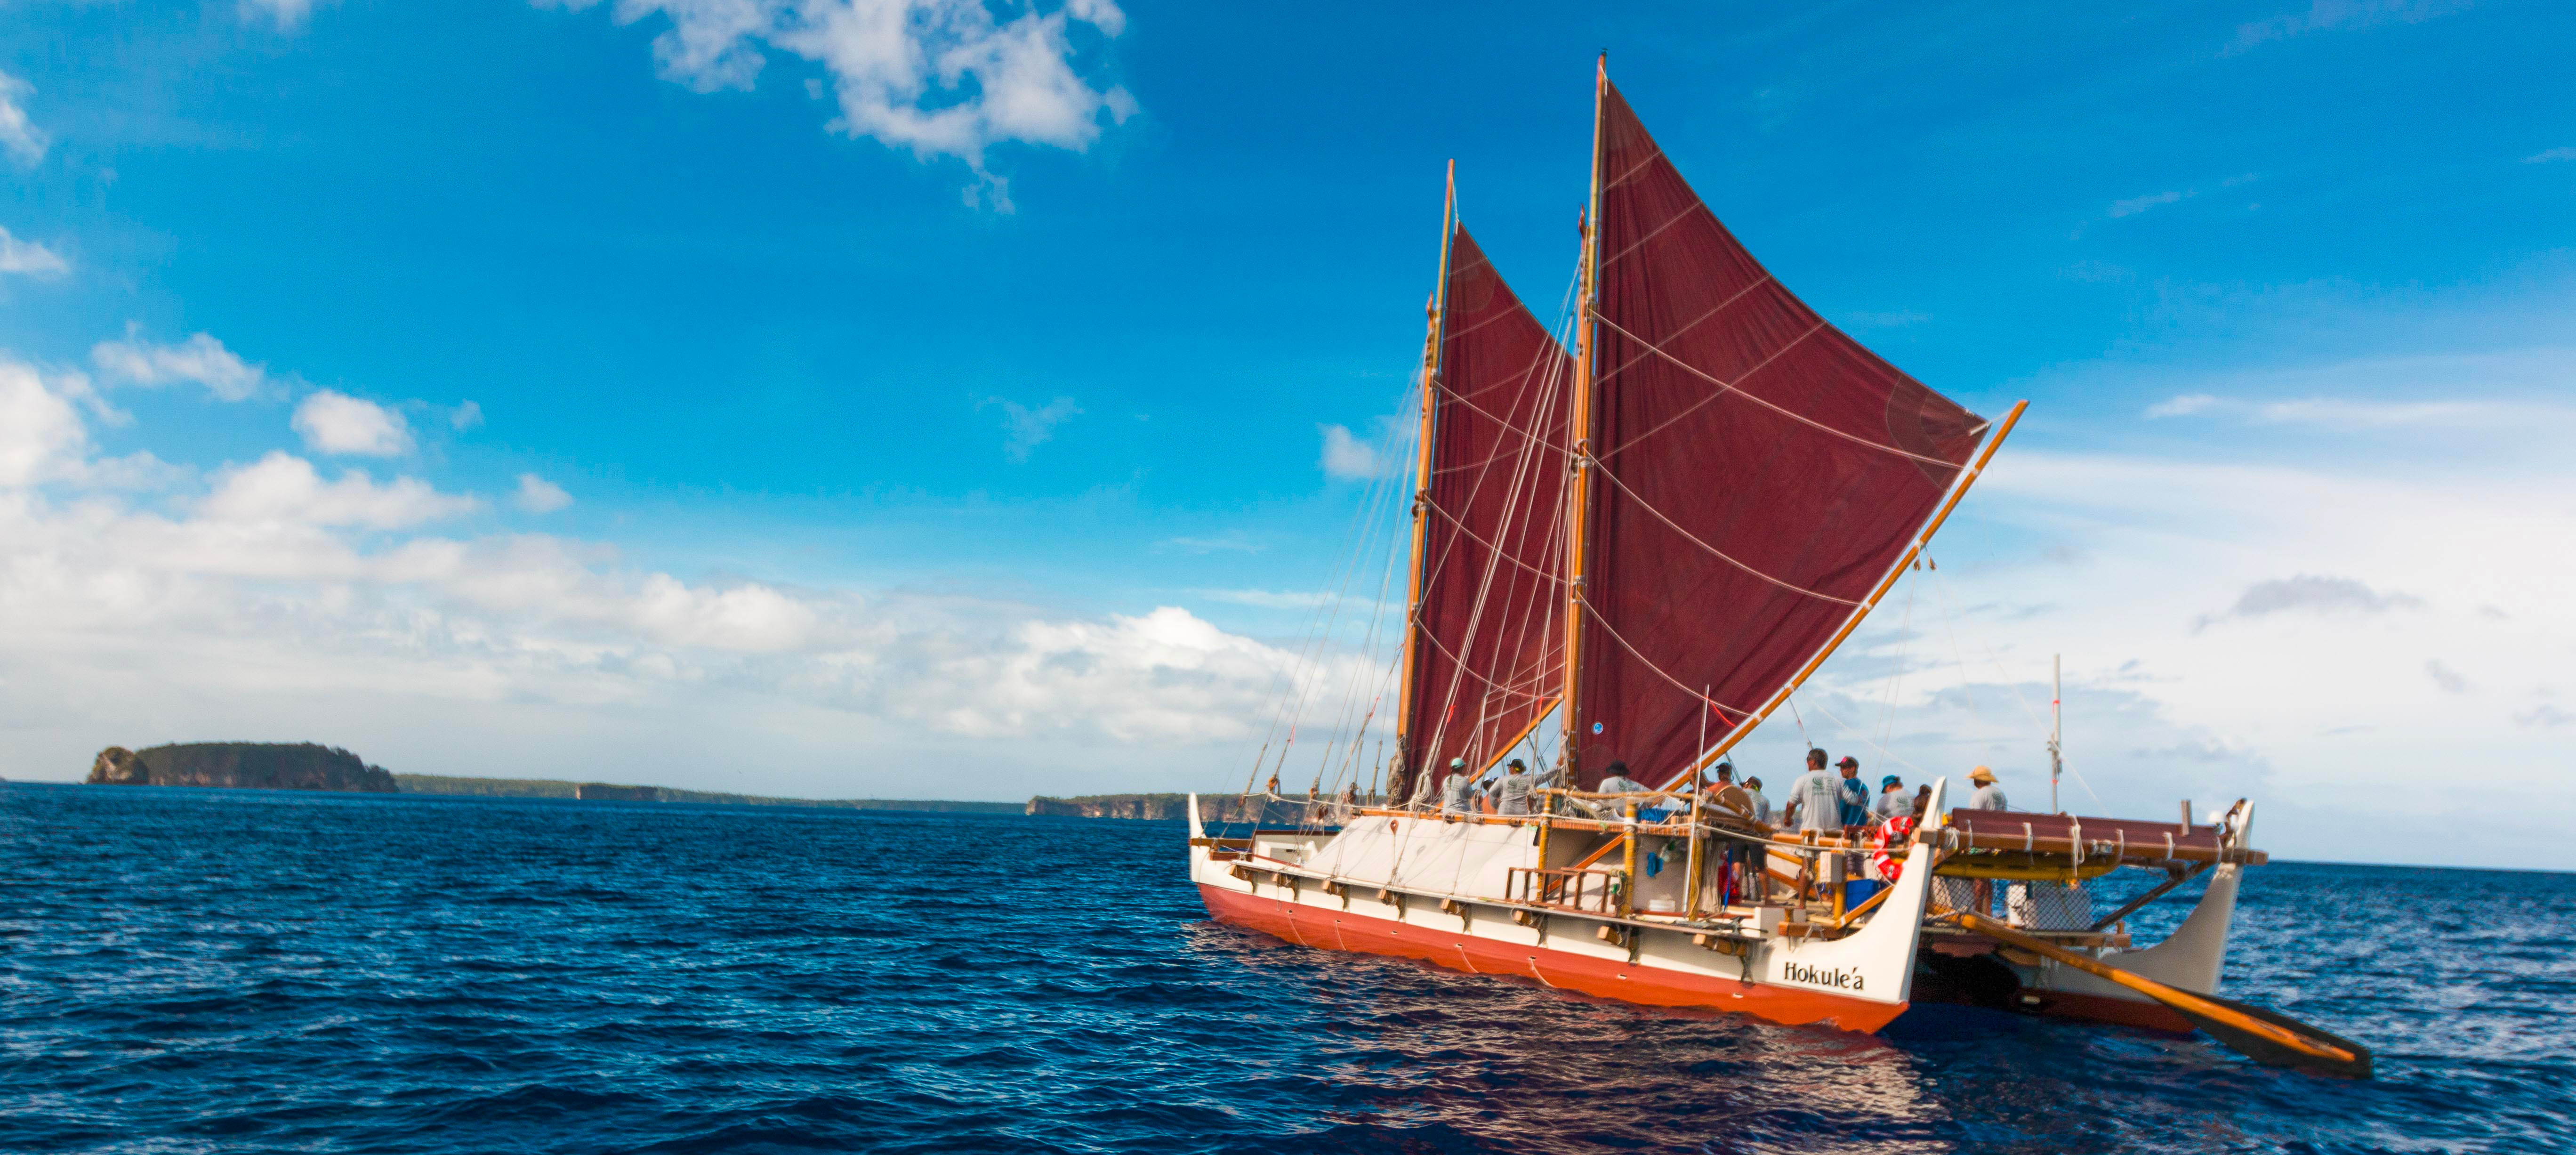 The Hōkūle'a double-hulled voyaging canoe, which since its first launch in 1975, has sailed over 140,000 nautical miles. Courtesy Polynesian Voyaging Society. Photo by ʻŌiwi TV. 2015.